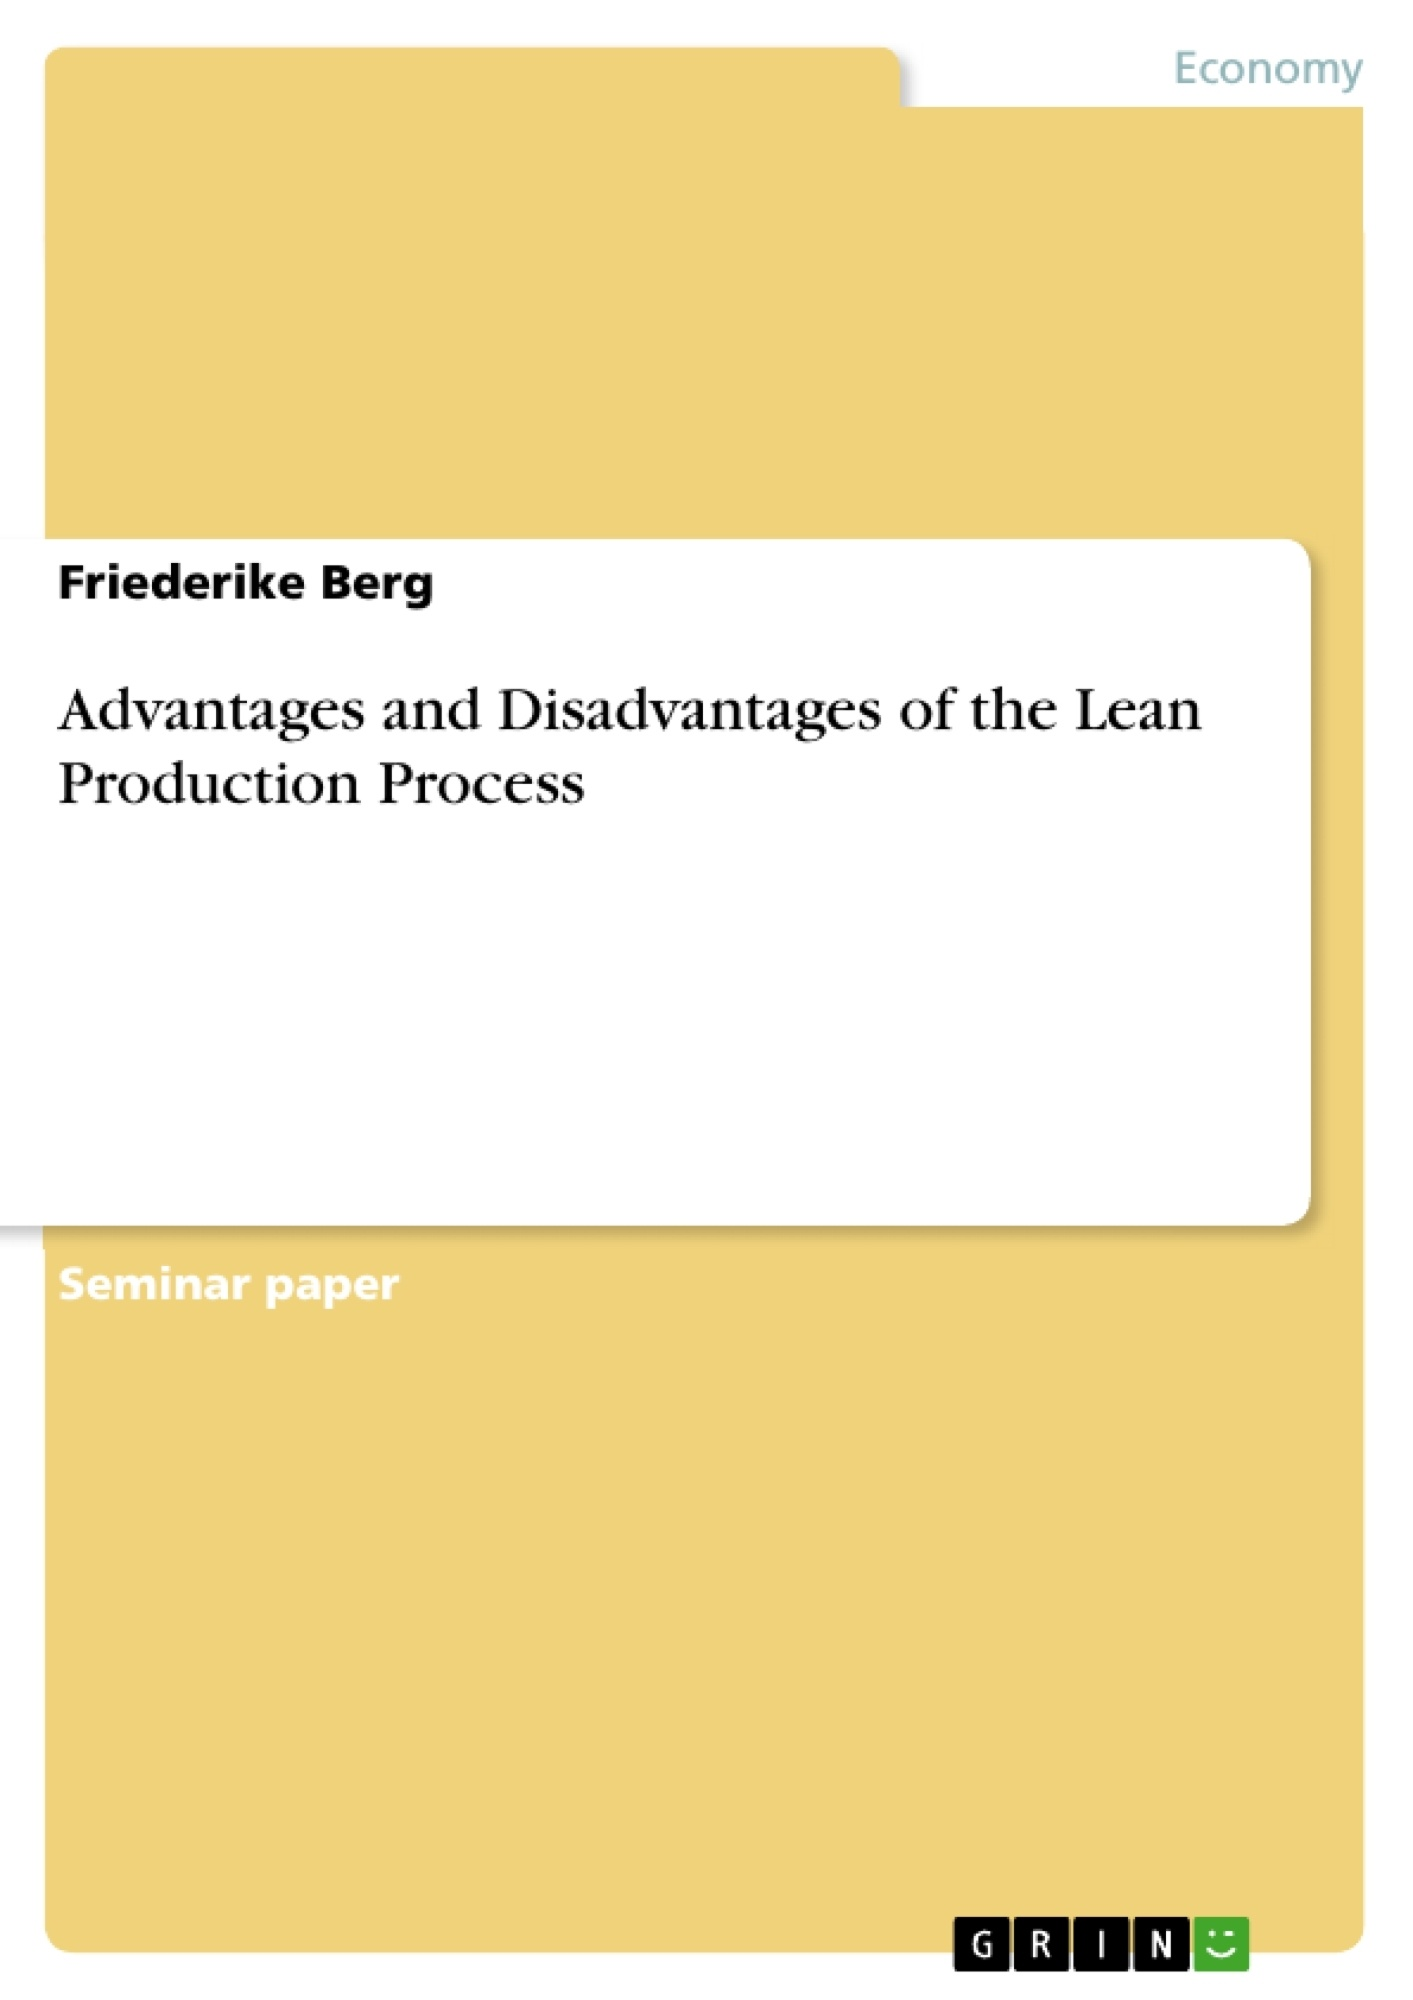 Title: Advantages and Disadvantages of the Lean Production Process